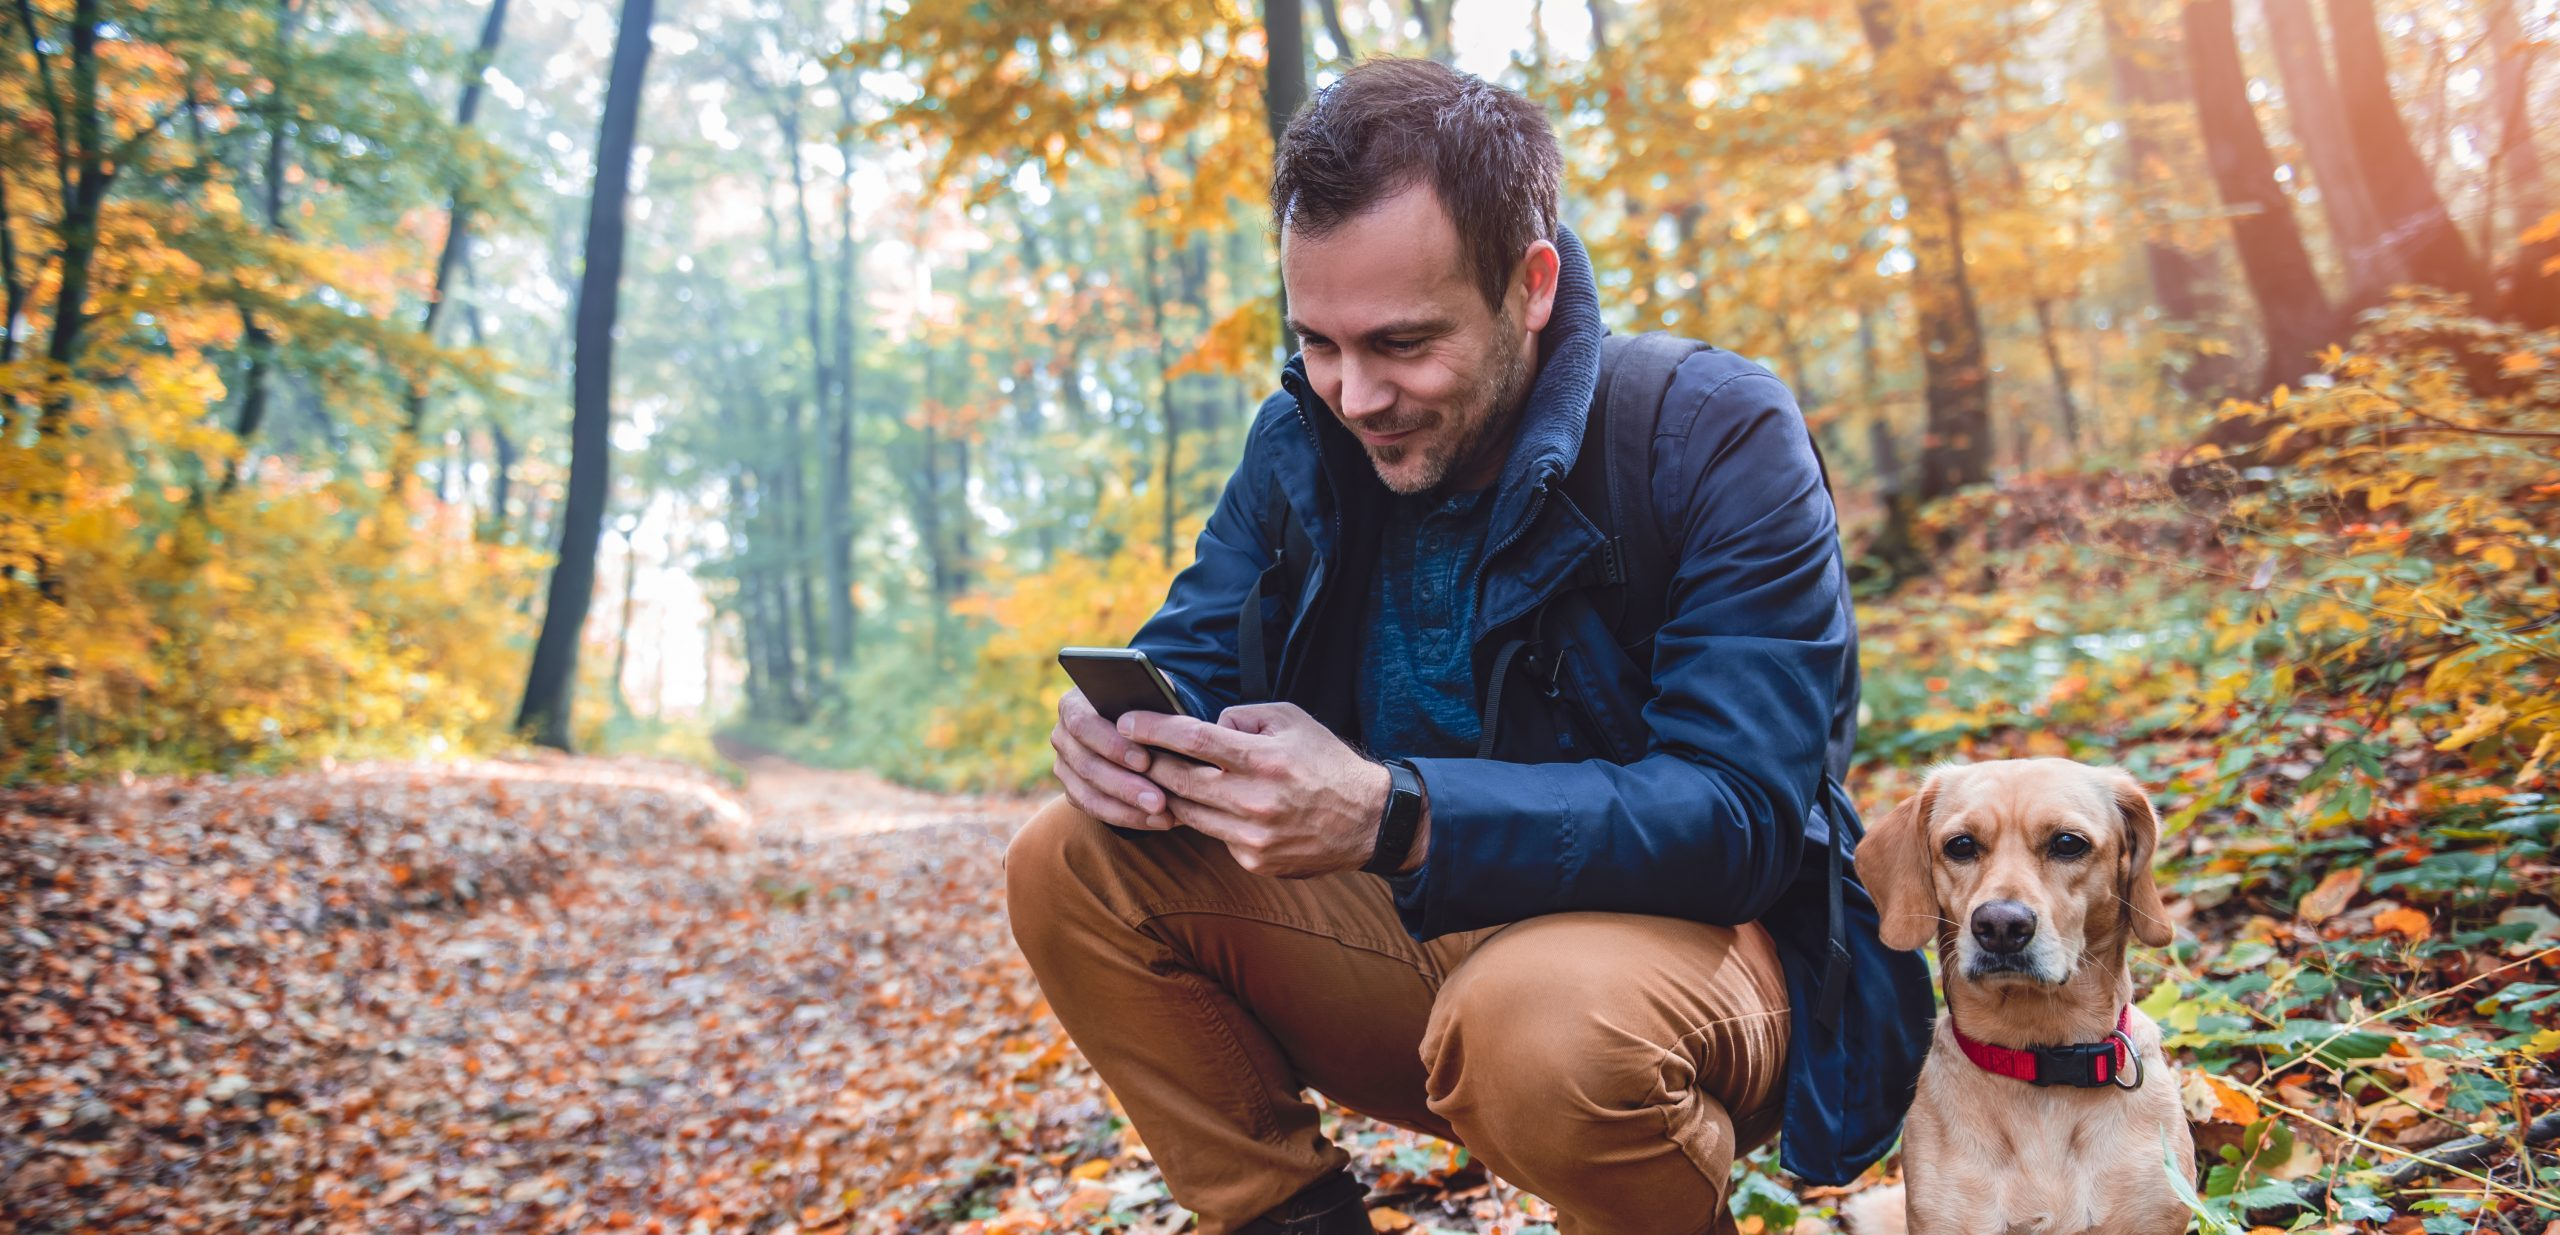 Man Uses Phone Forest